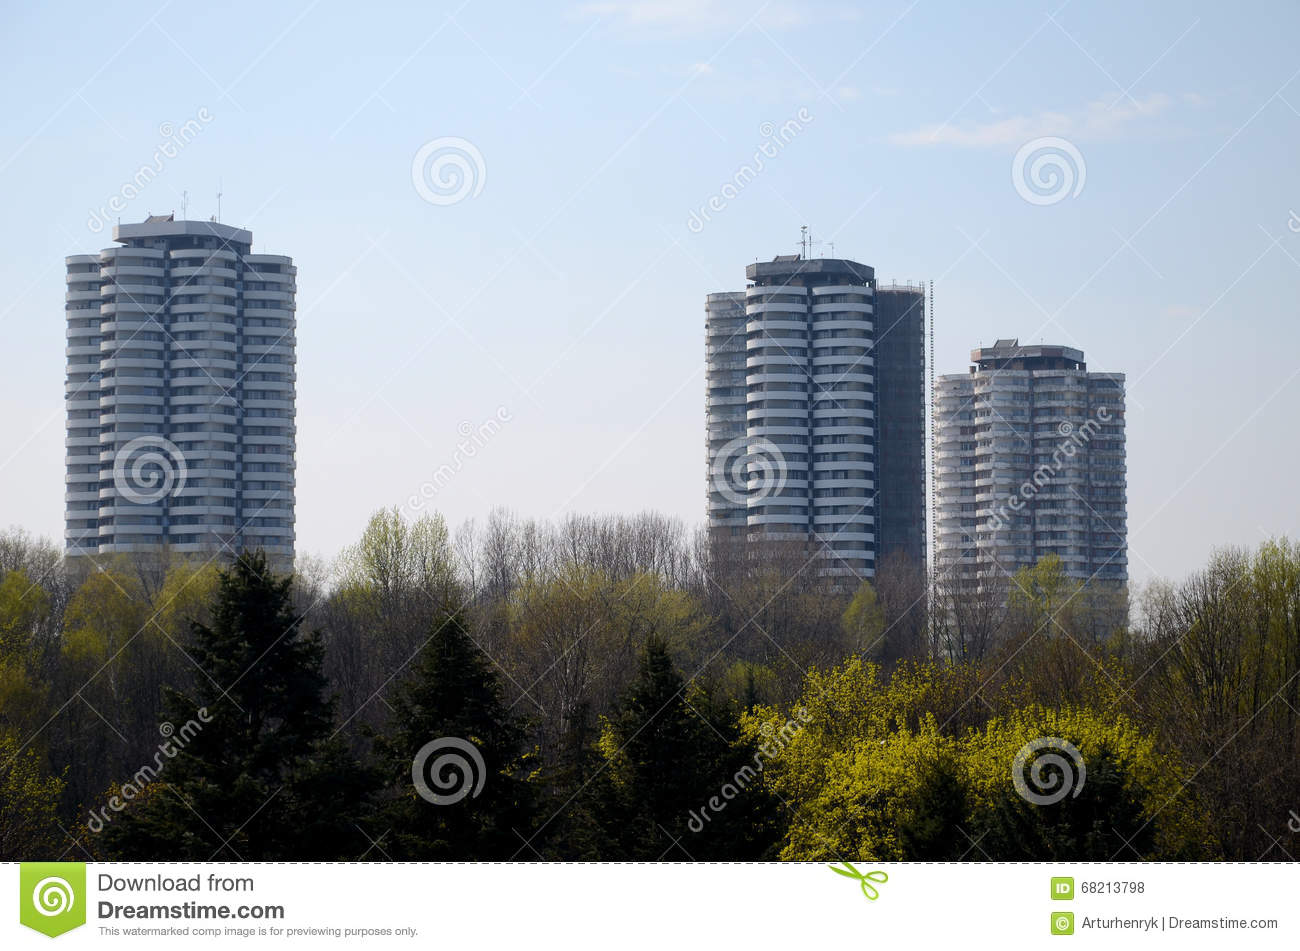 Residential skyscrapers in Katowice, Poland